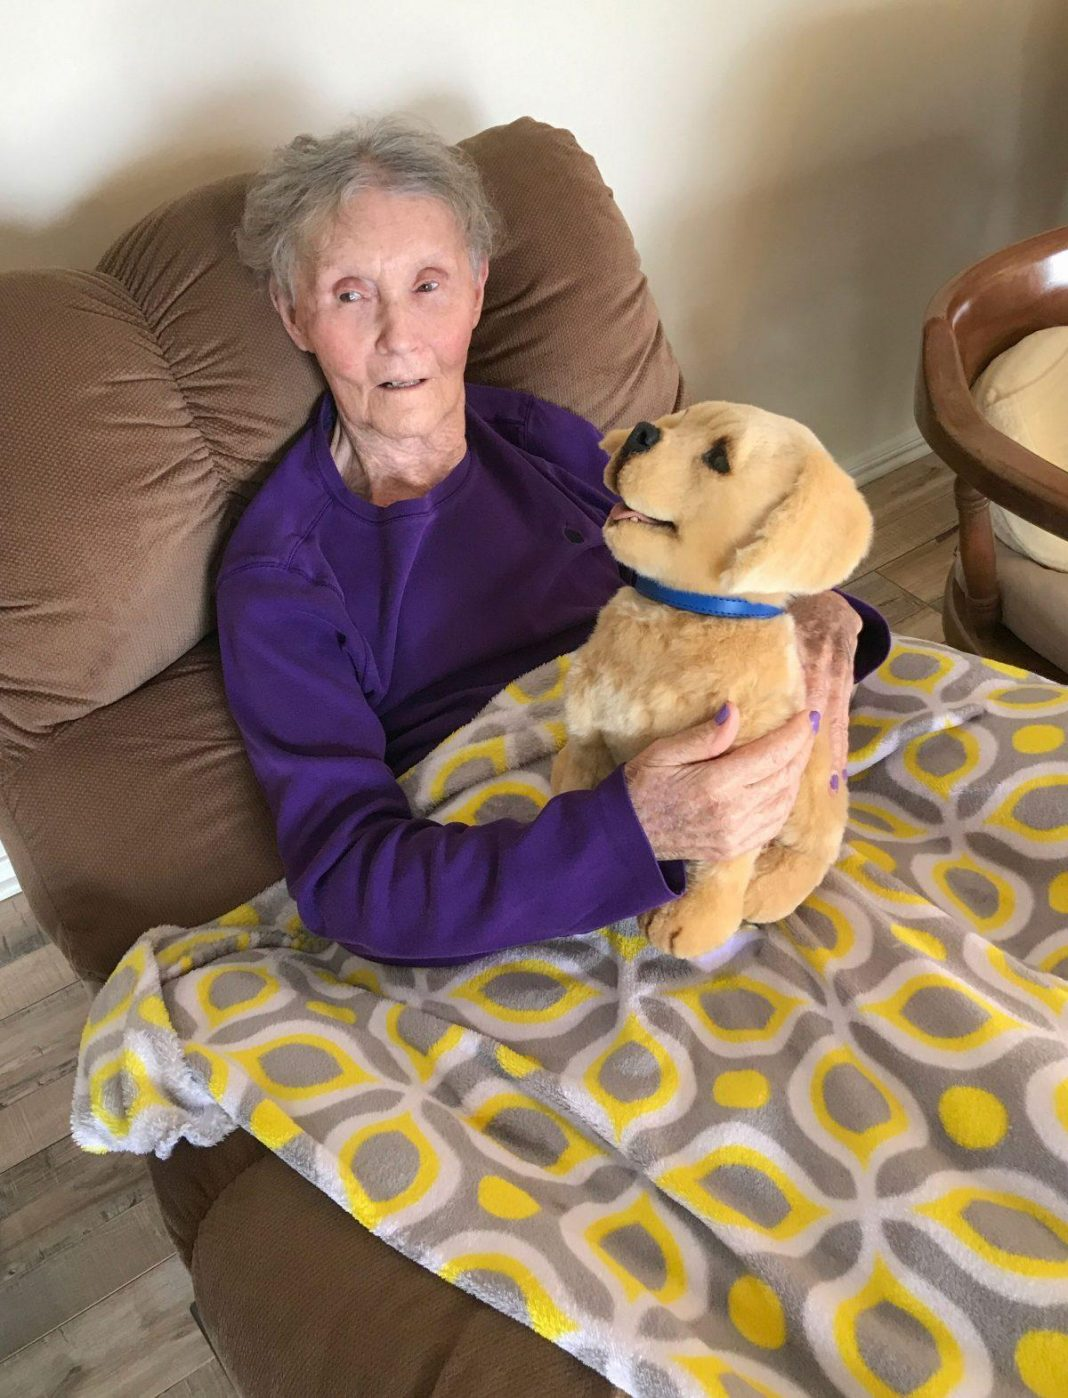 Business Presents Jim Henson's Animal Shop-Designed Robotic Young Puppy For Dementia Treatment